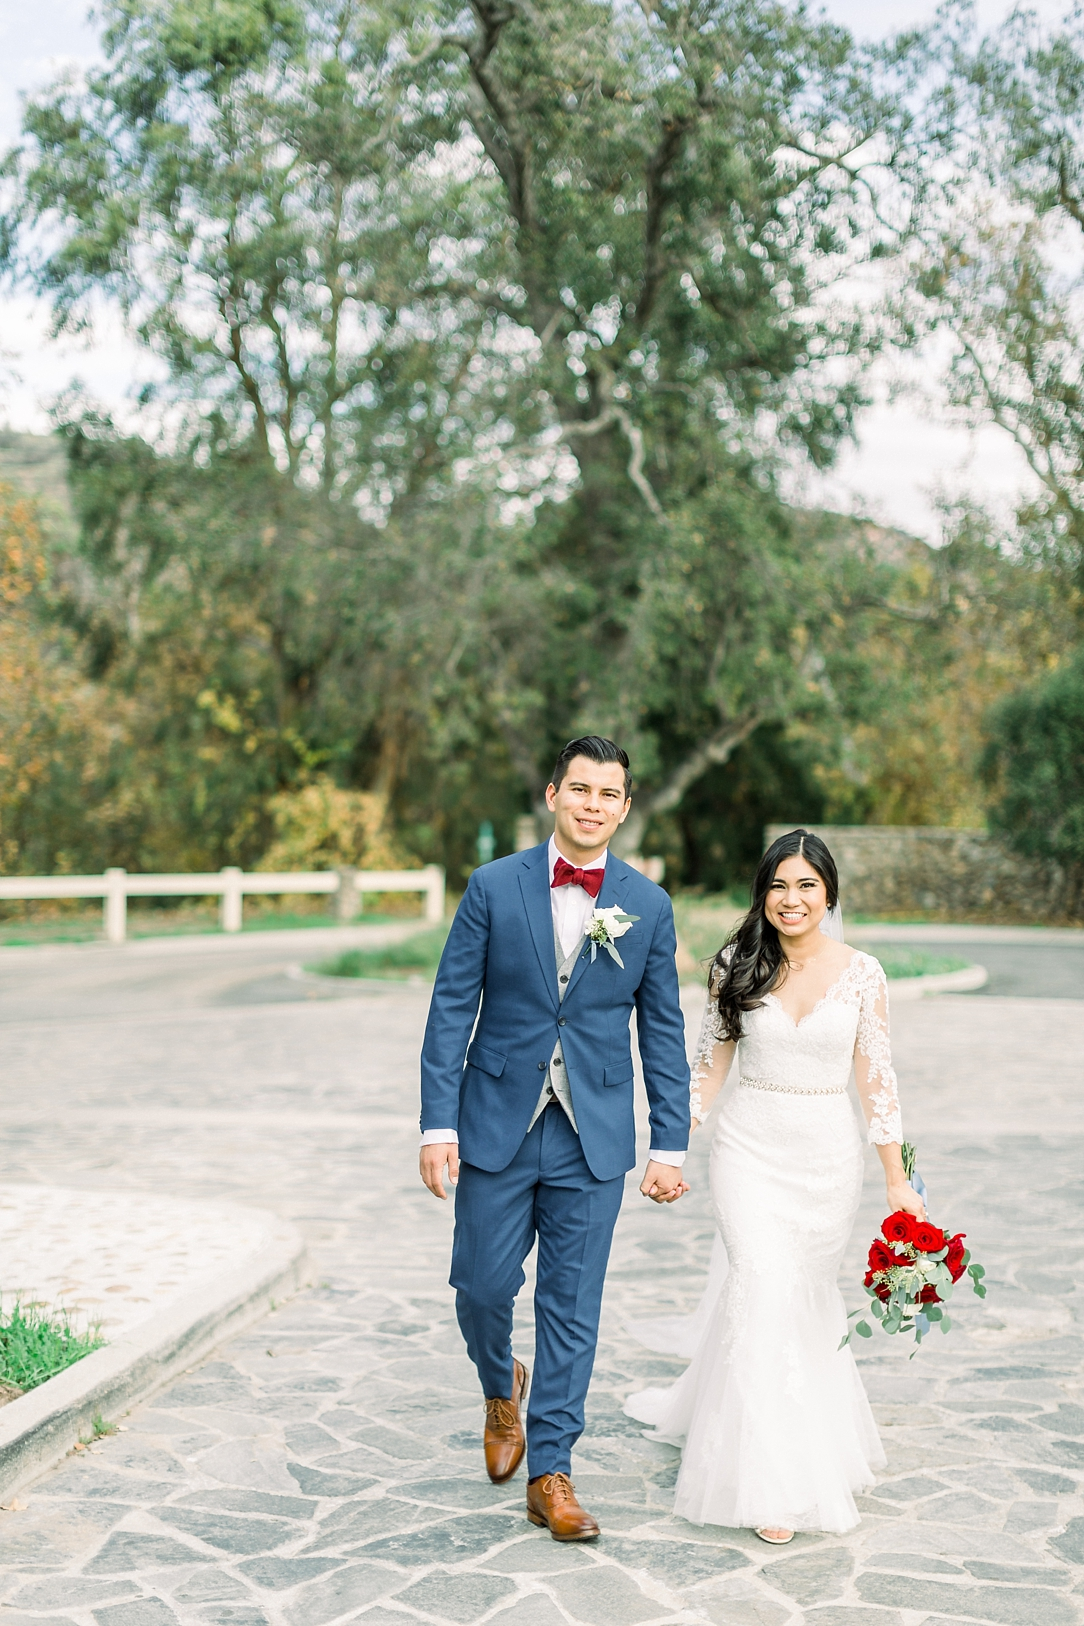 A Vintage Inspired Wedding At Santiago Oaks Regional Park And The Vintage Rose By Natural Light Photographer Madison Ellis Photography. (42)